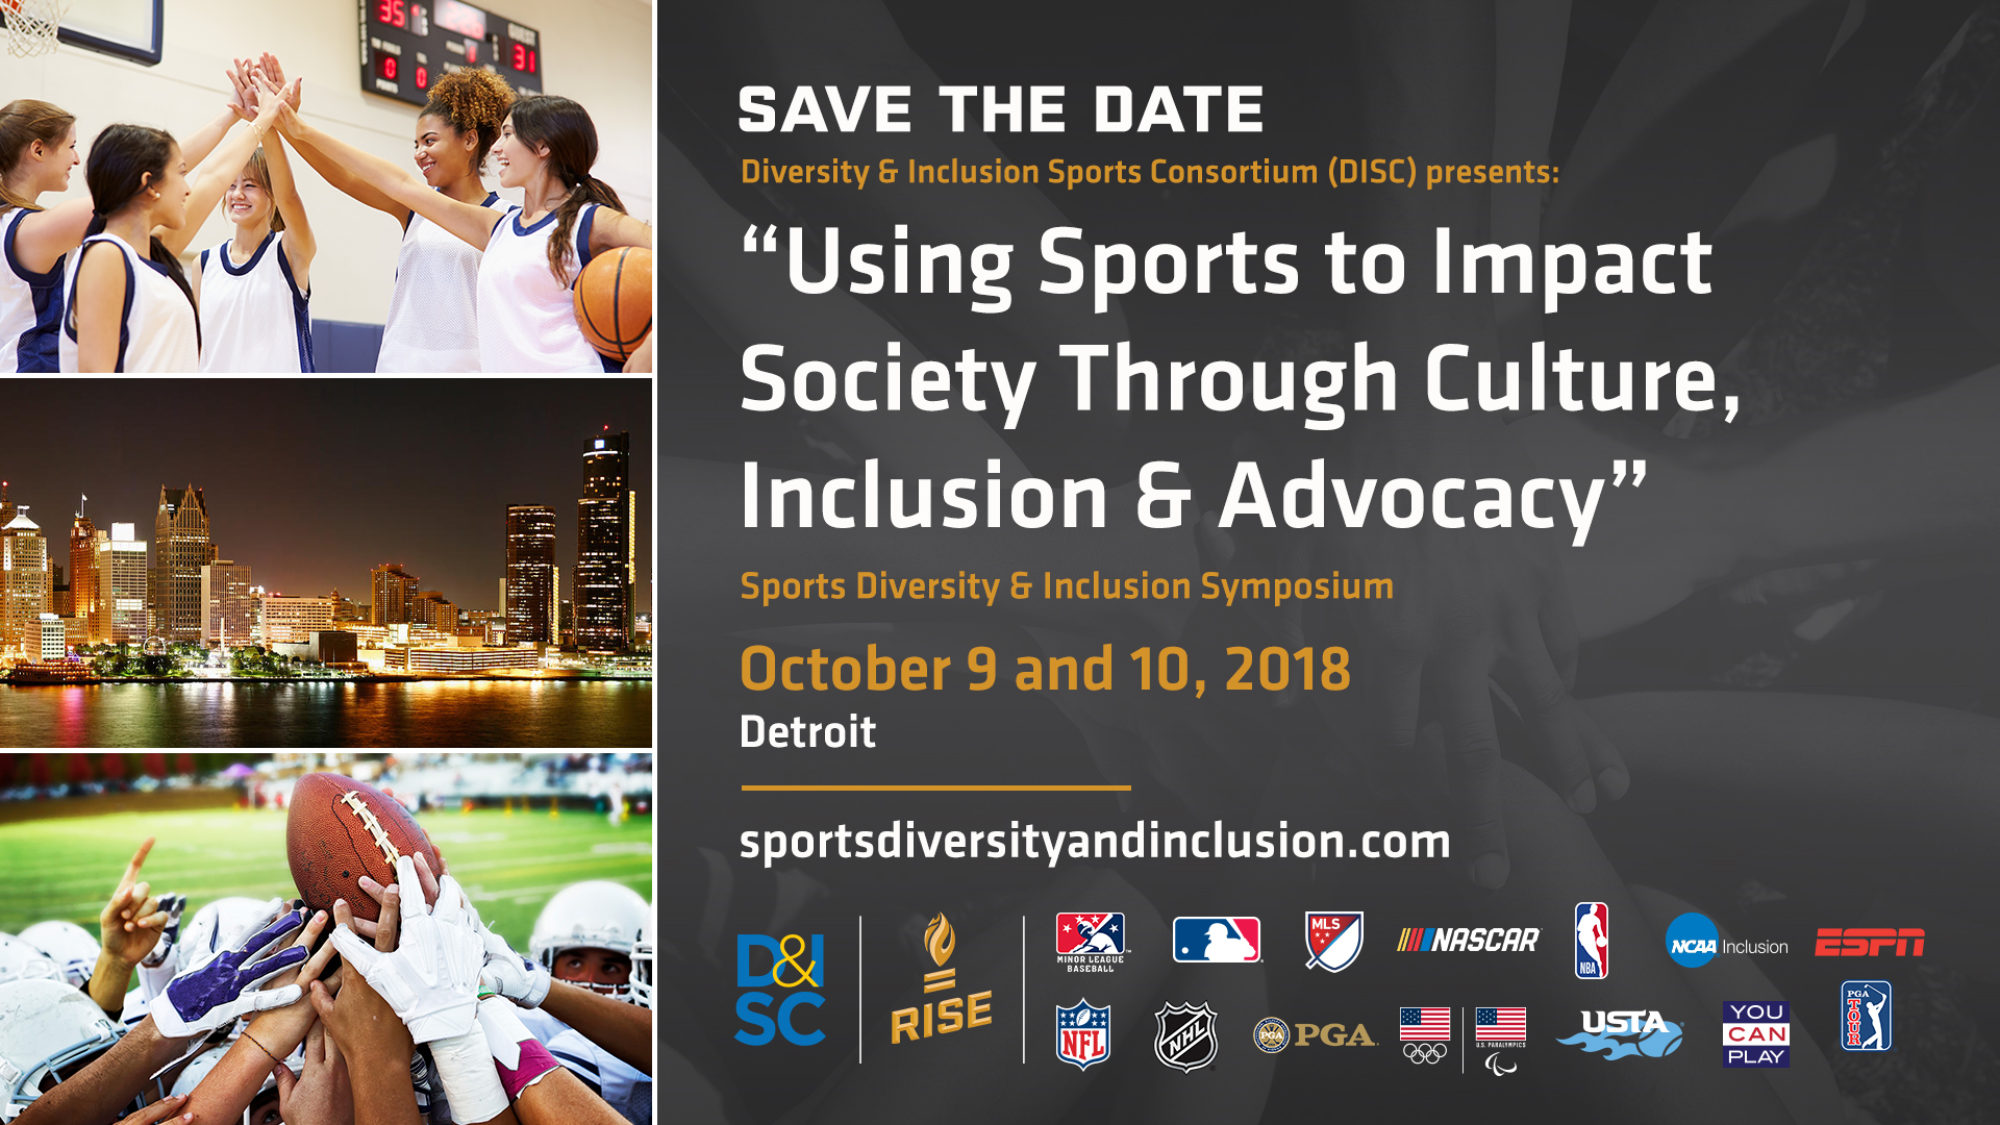 Sports Diversity and Inclusion Symposium